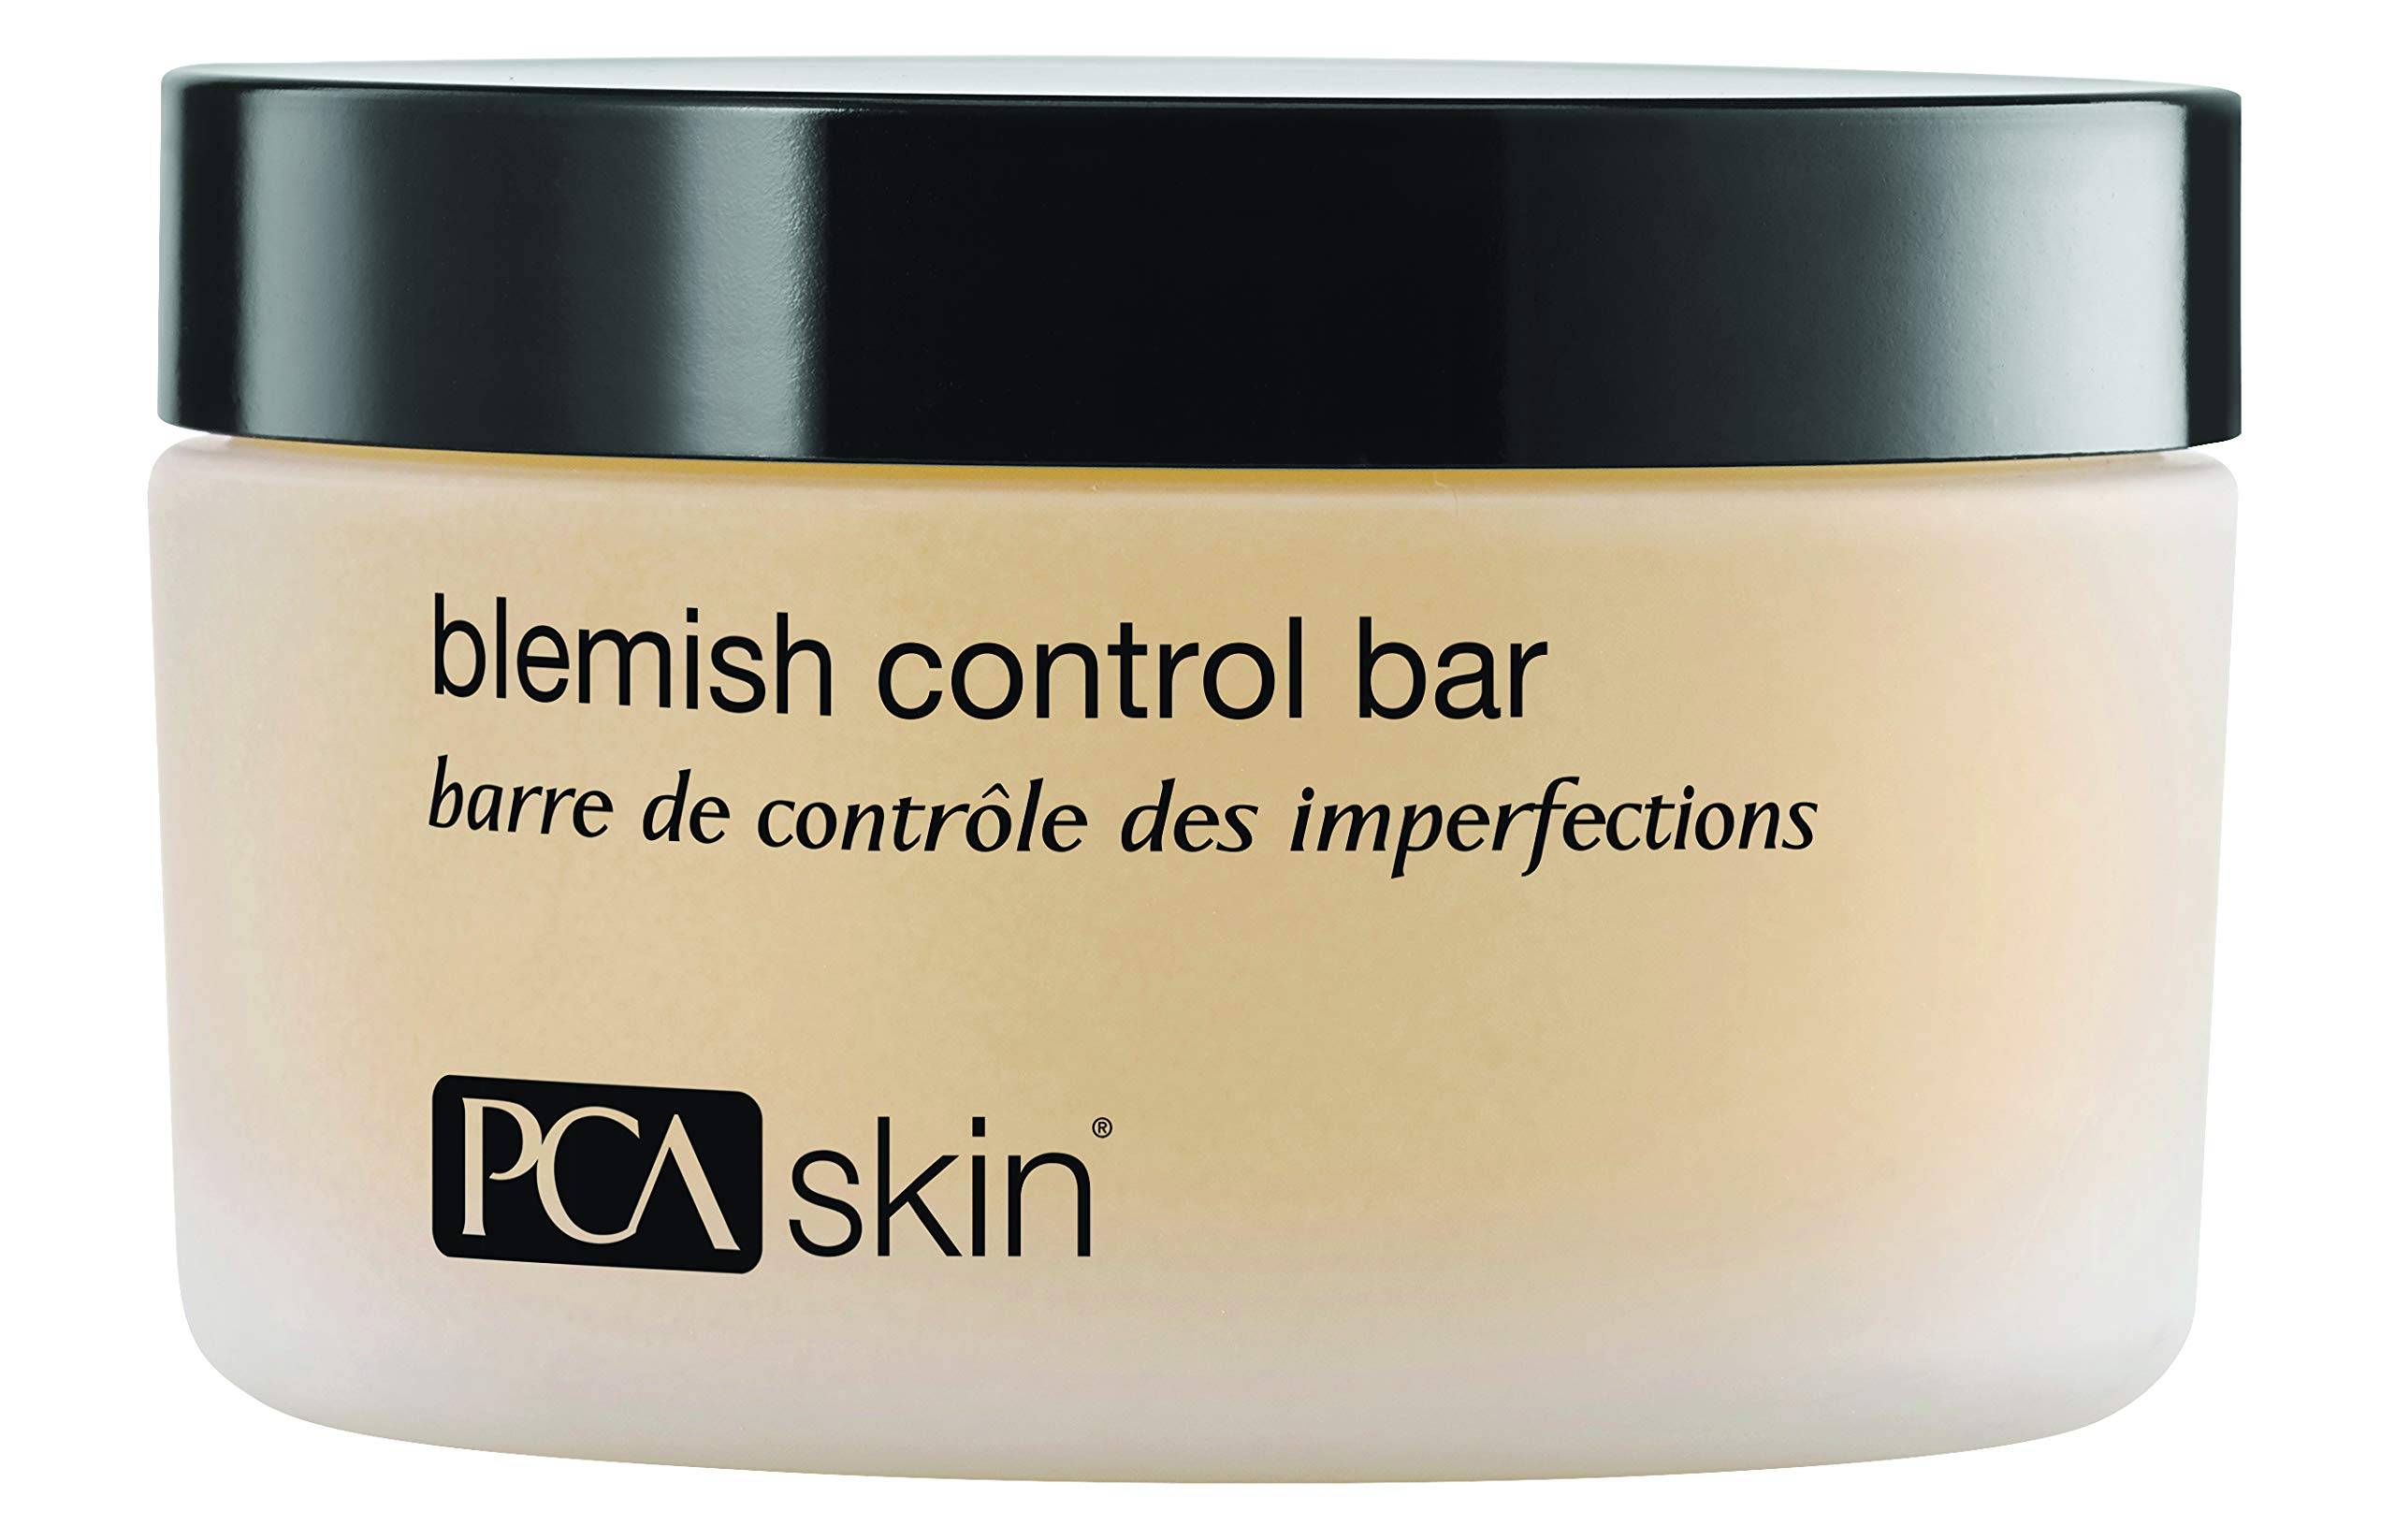 PCA SKIN Blemish Control Bar - 2% Salicylic Acid Facial Cleanser for Oily / Acne-Prone Skin (3.2 oz)